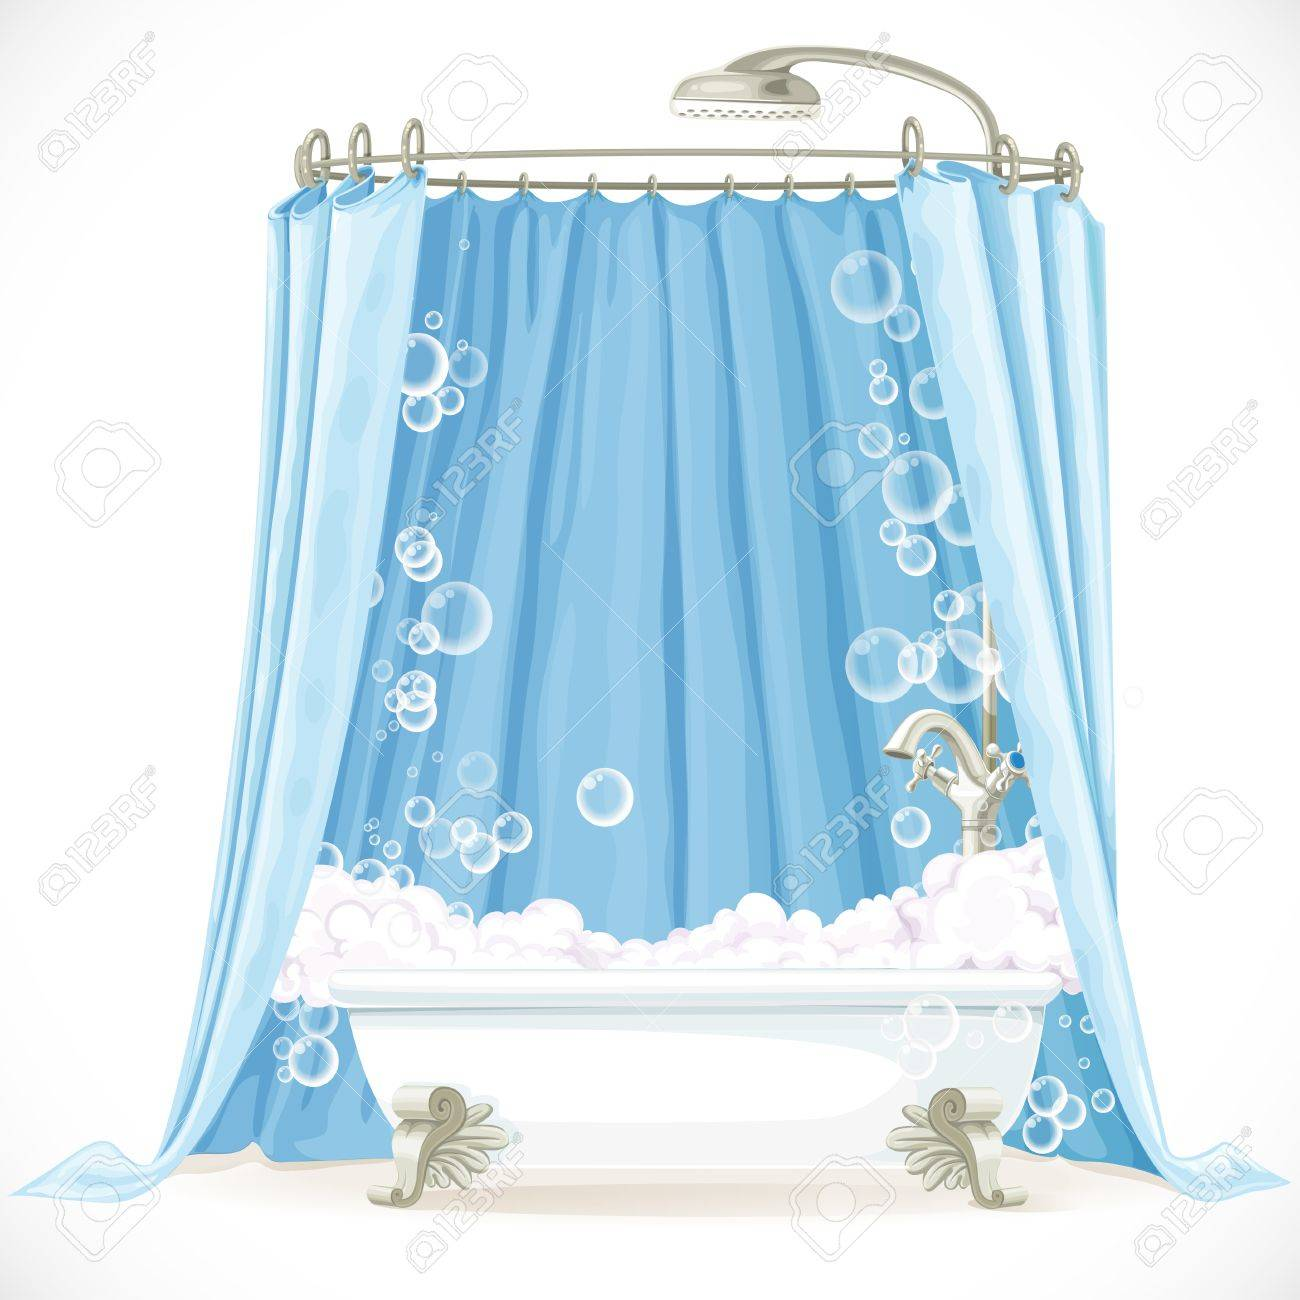 Vintage Claw Foot Bathtub And A Curtain On The Hoop